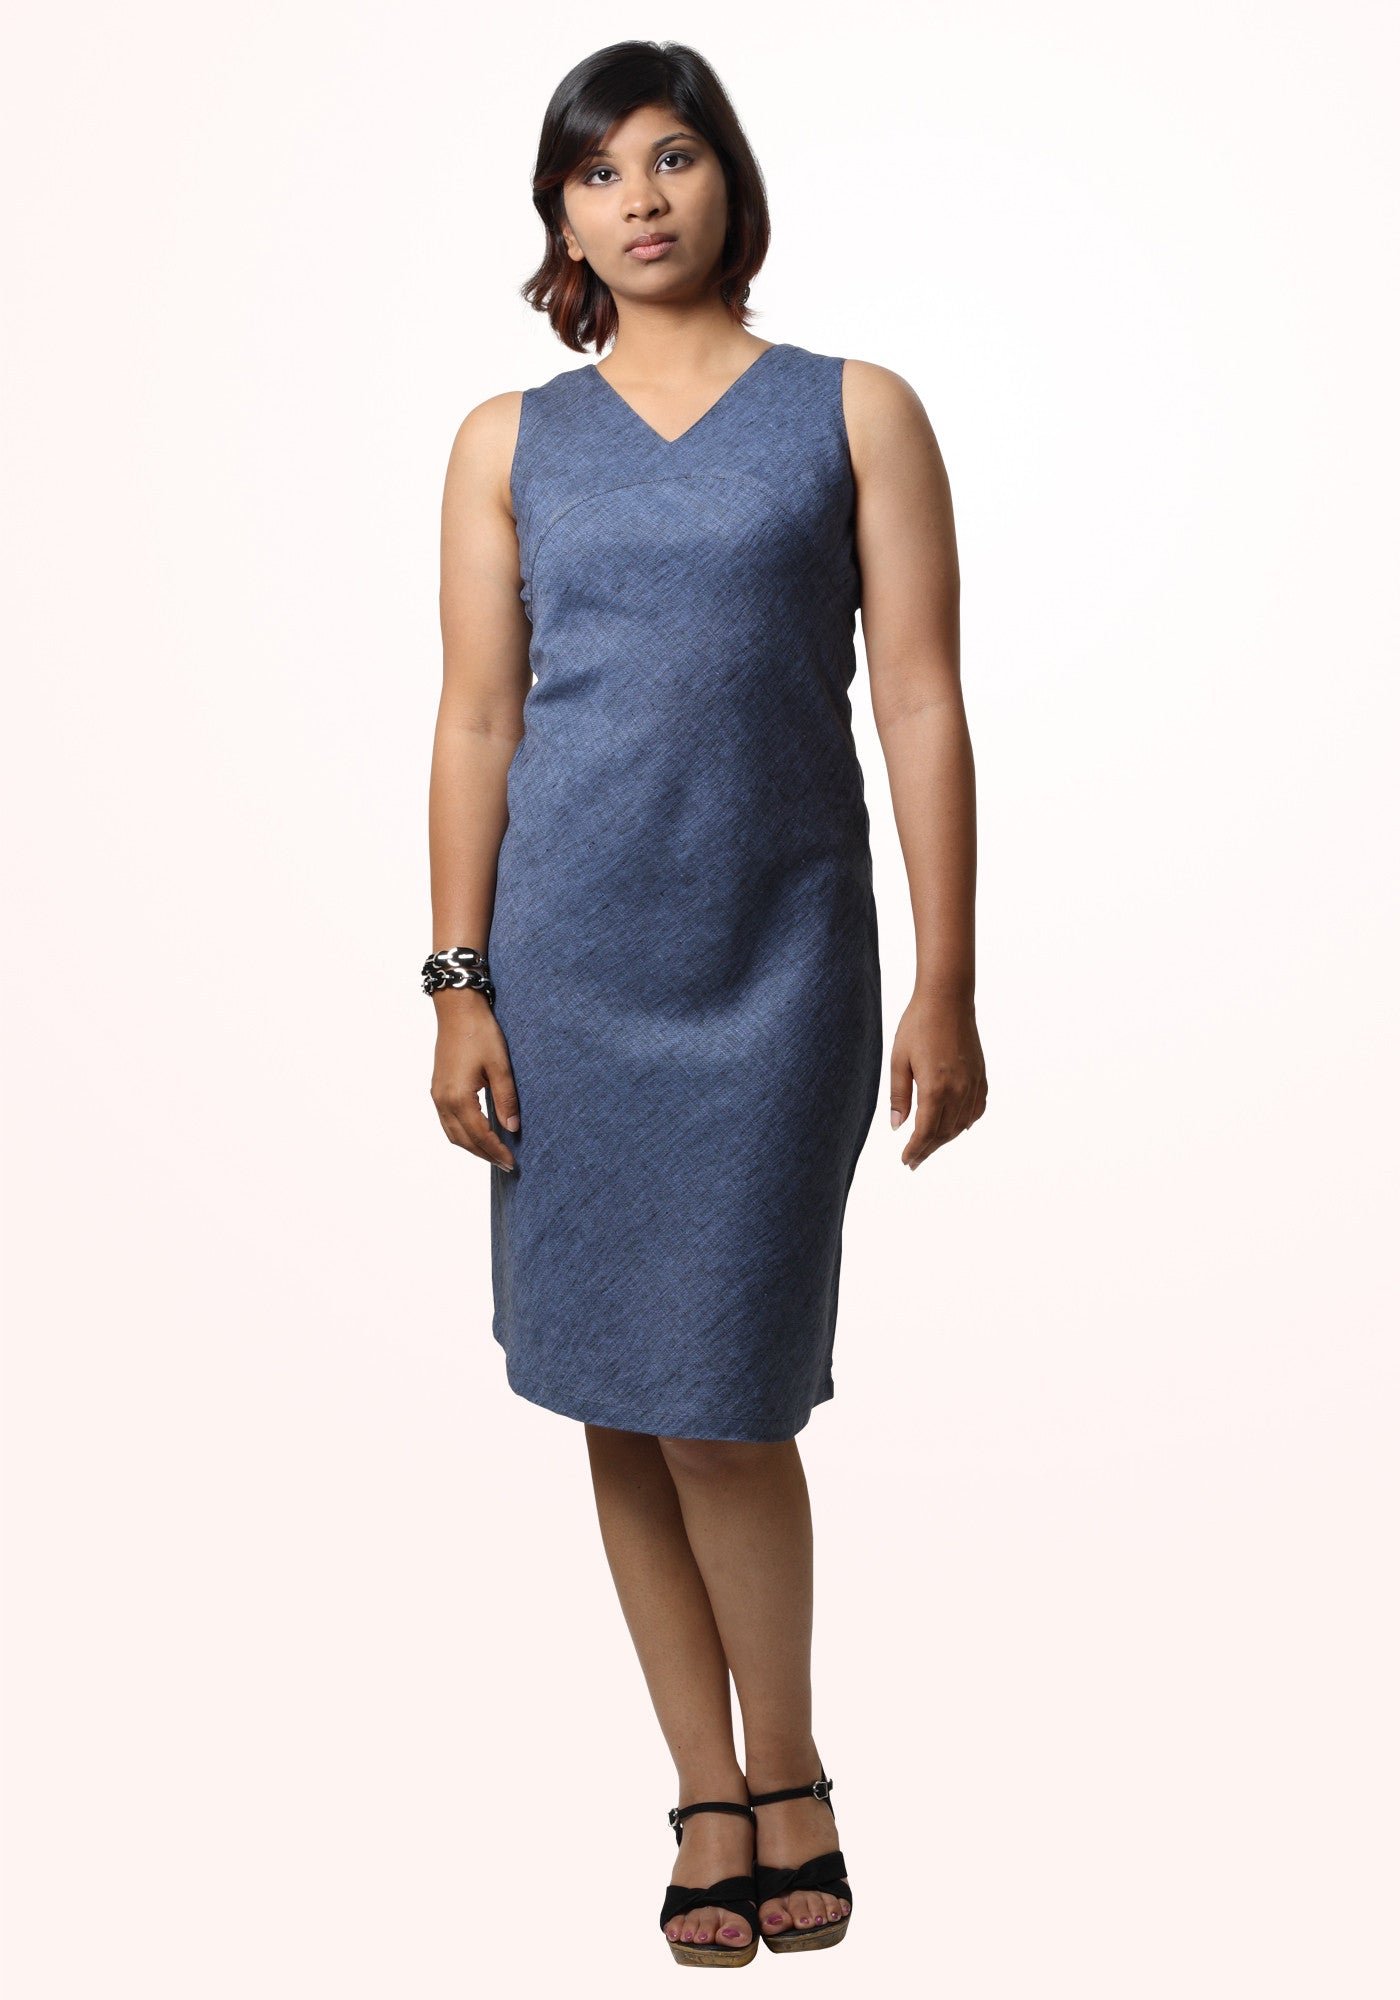 Linen bias dress - denim blue - MINC ecofashion